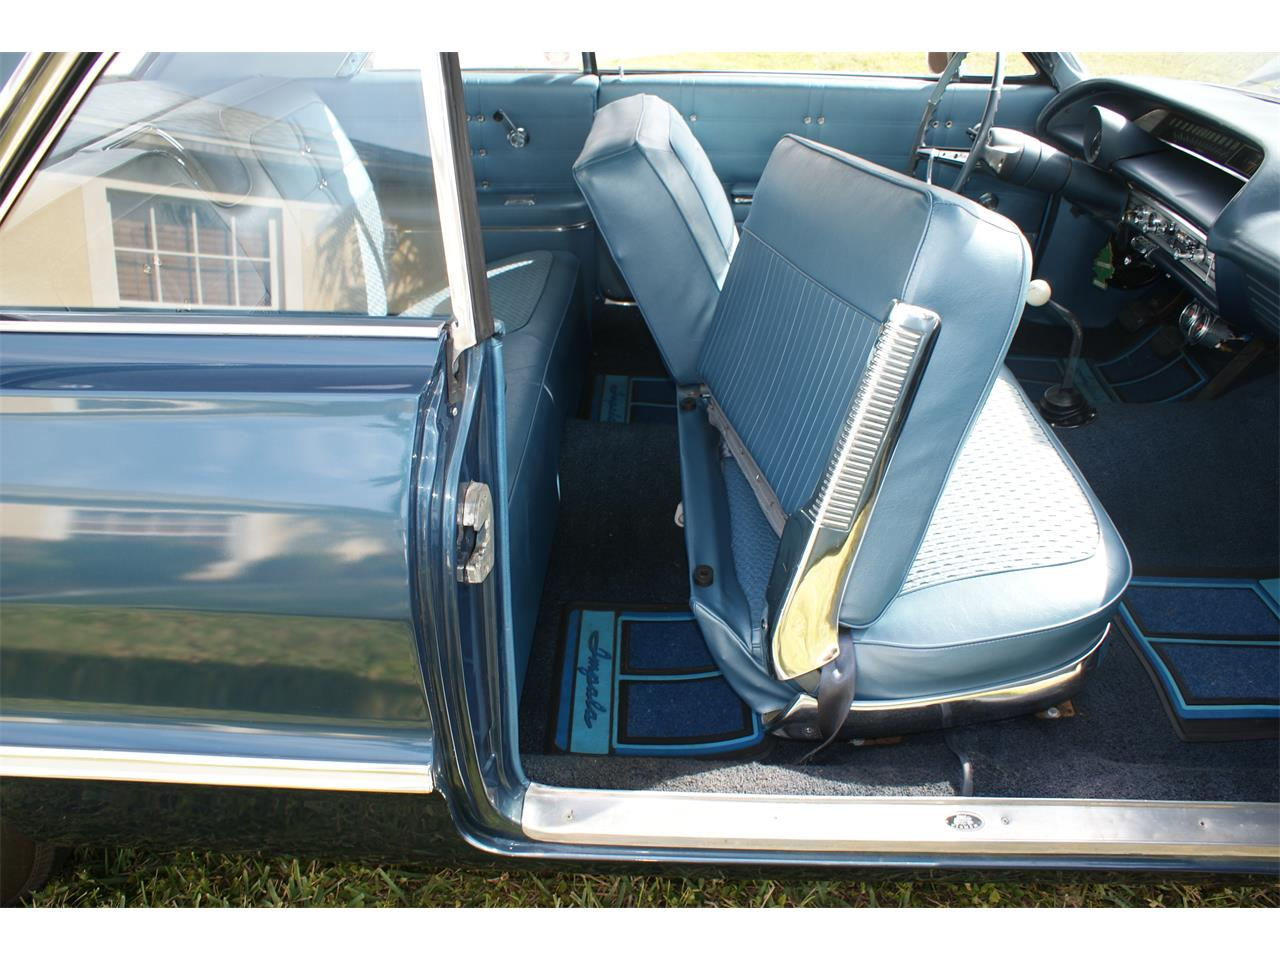 Large Picture of Classic '63 Impala located in CAPE CORAL Florida - $47,900.00 Offered by a Private Seller - P4QR